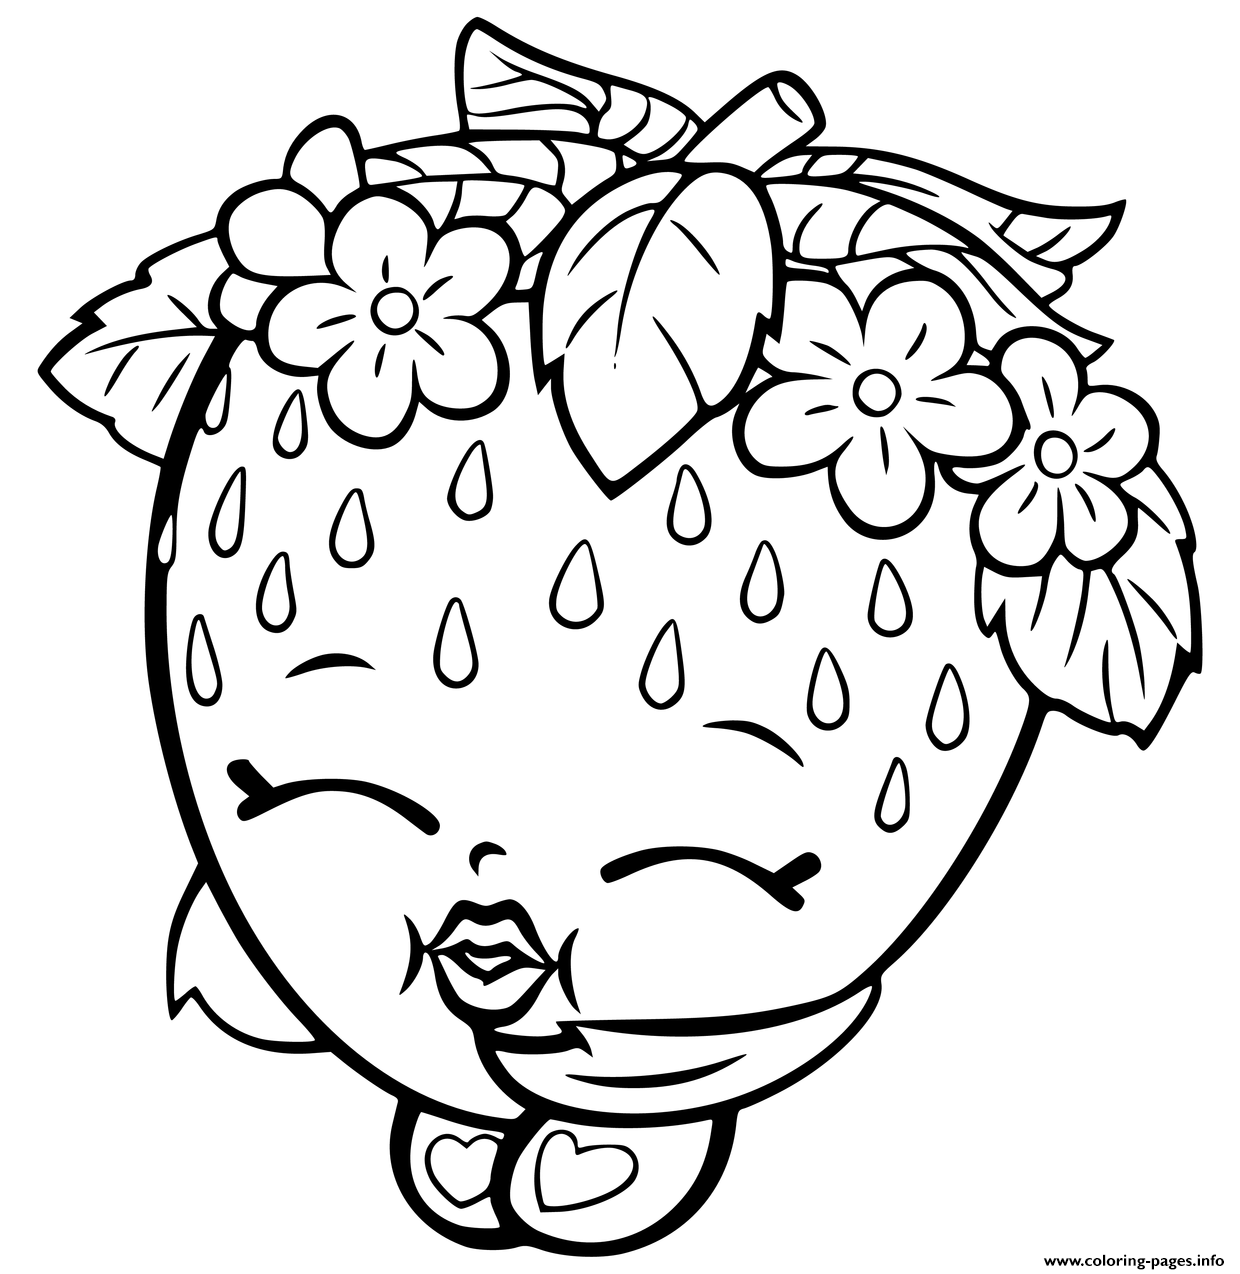 Shopkins Strawberry Coloring Pages Print Download 502 Prints